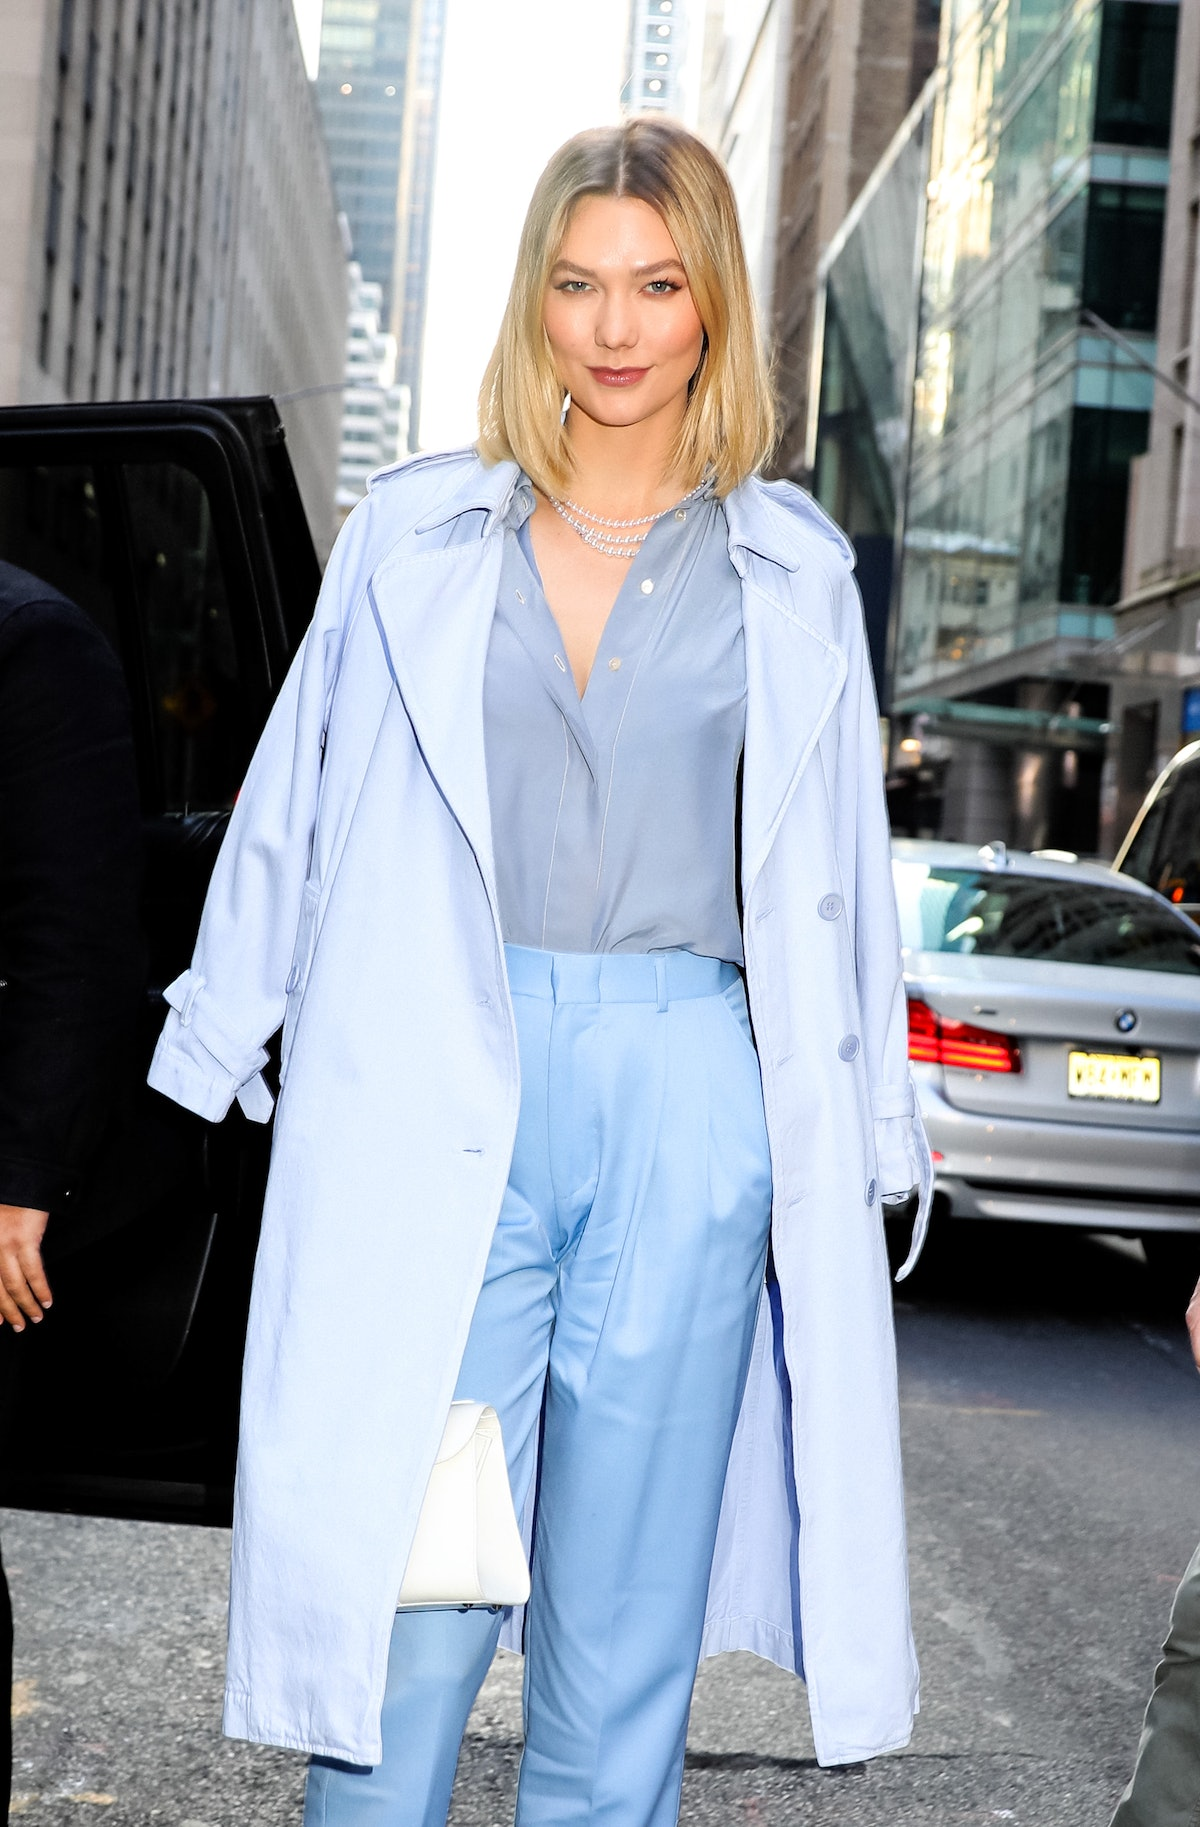 NEW YORK, NY - MARCH 06: Karlie Kloss is seen on March 06, 2020 in New York City.  (Photo by Jose Pe...